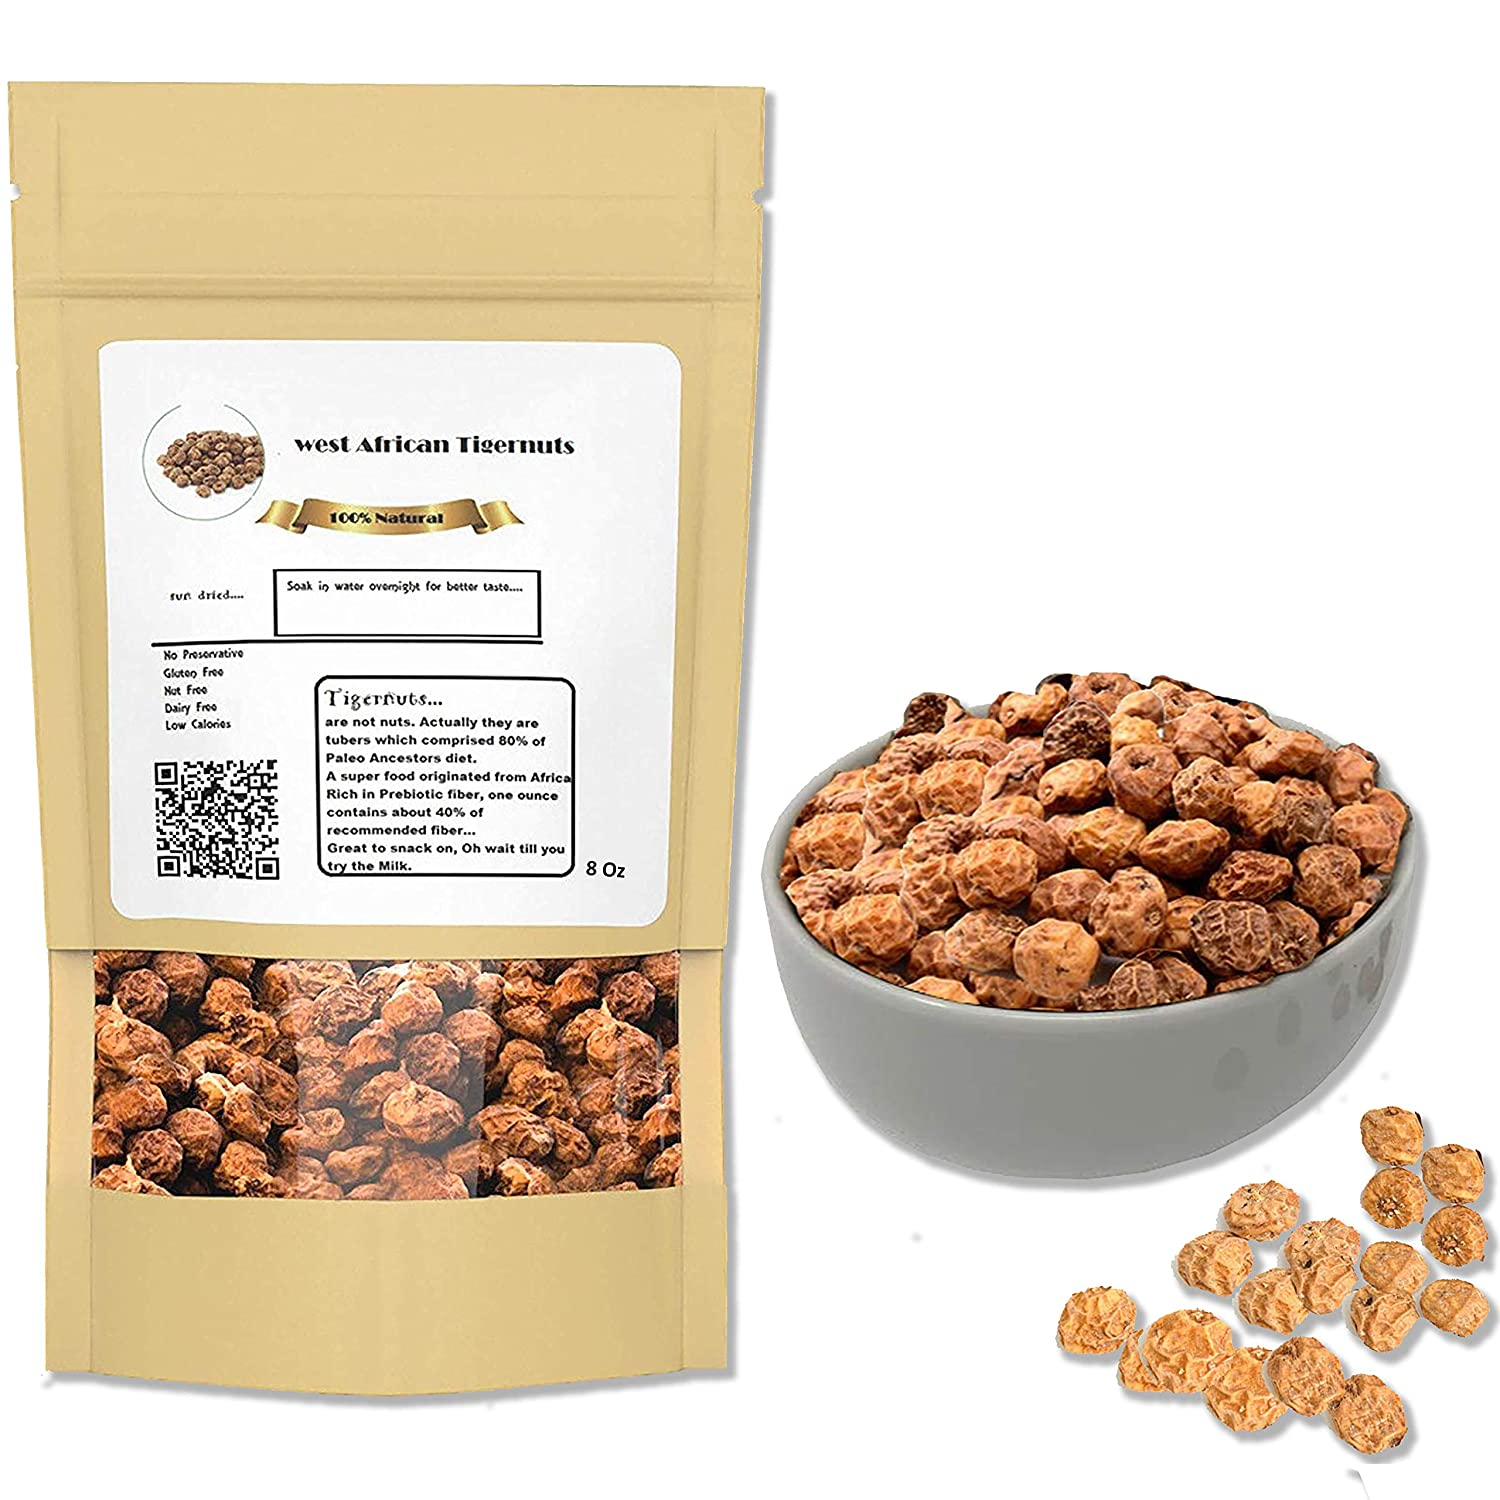 West African Tiger Max 75% OFF Nuts I Whole RawTigernut OZ for 8 Keto Diet outlet O